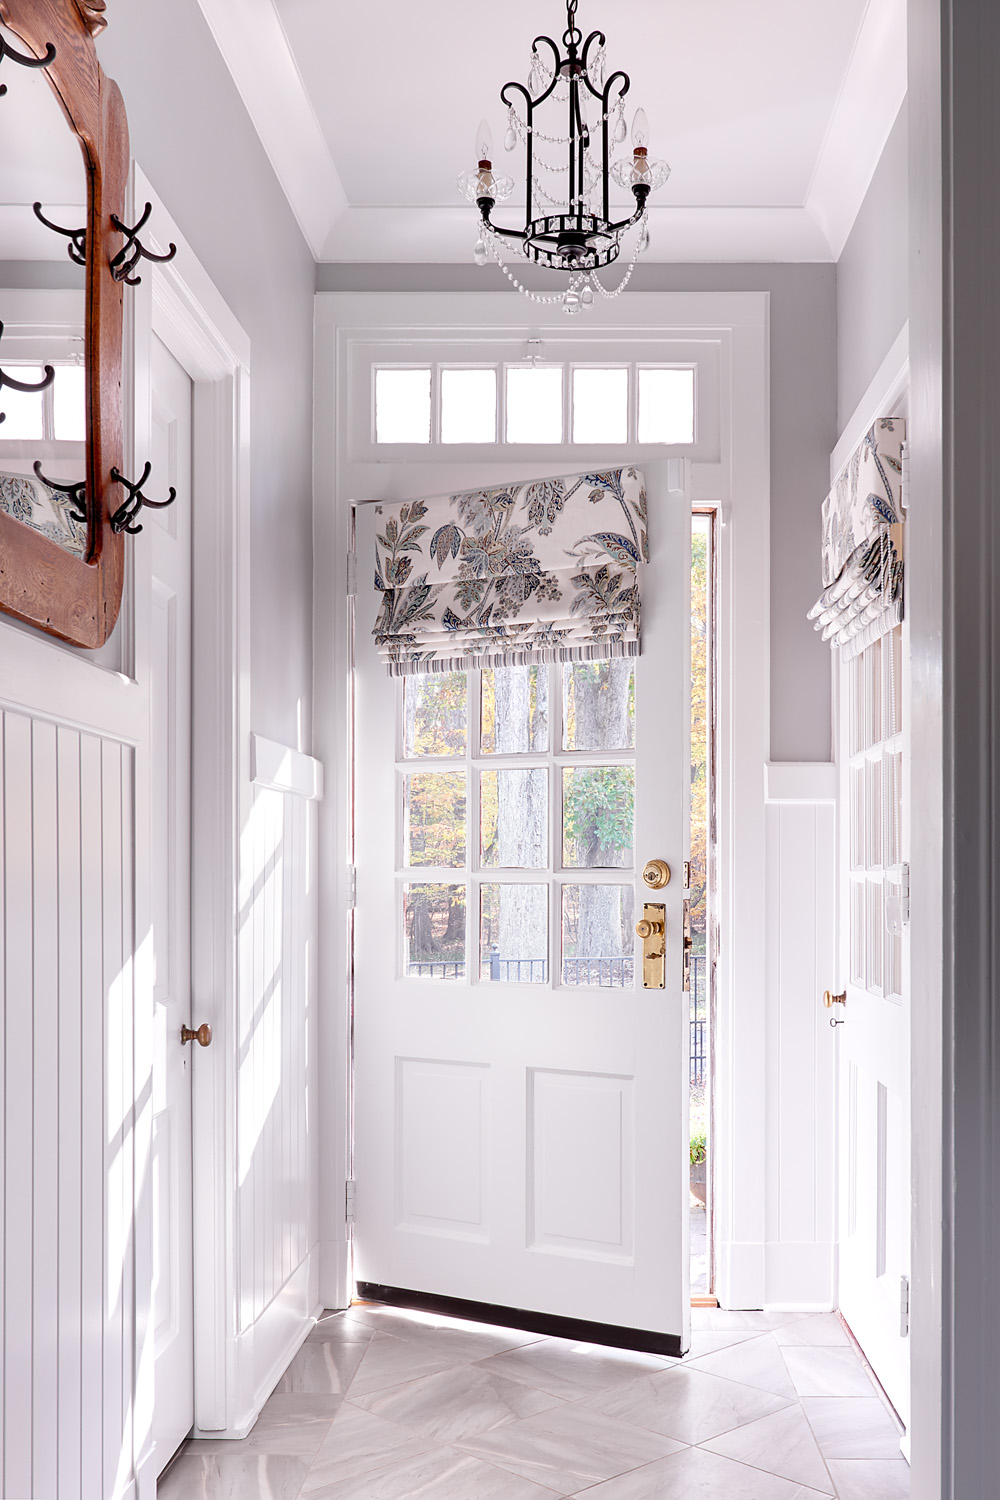 Mud entry to 1920's Cape Cod style home with tile floors and crystal chandelier and wainscoting on walls